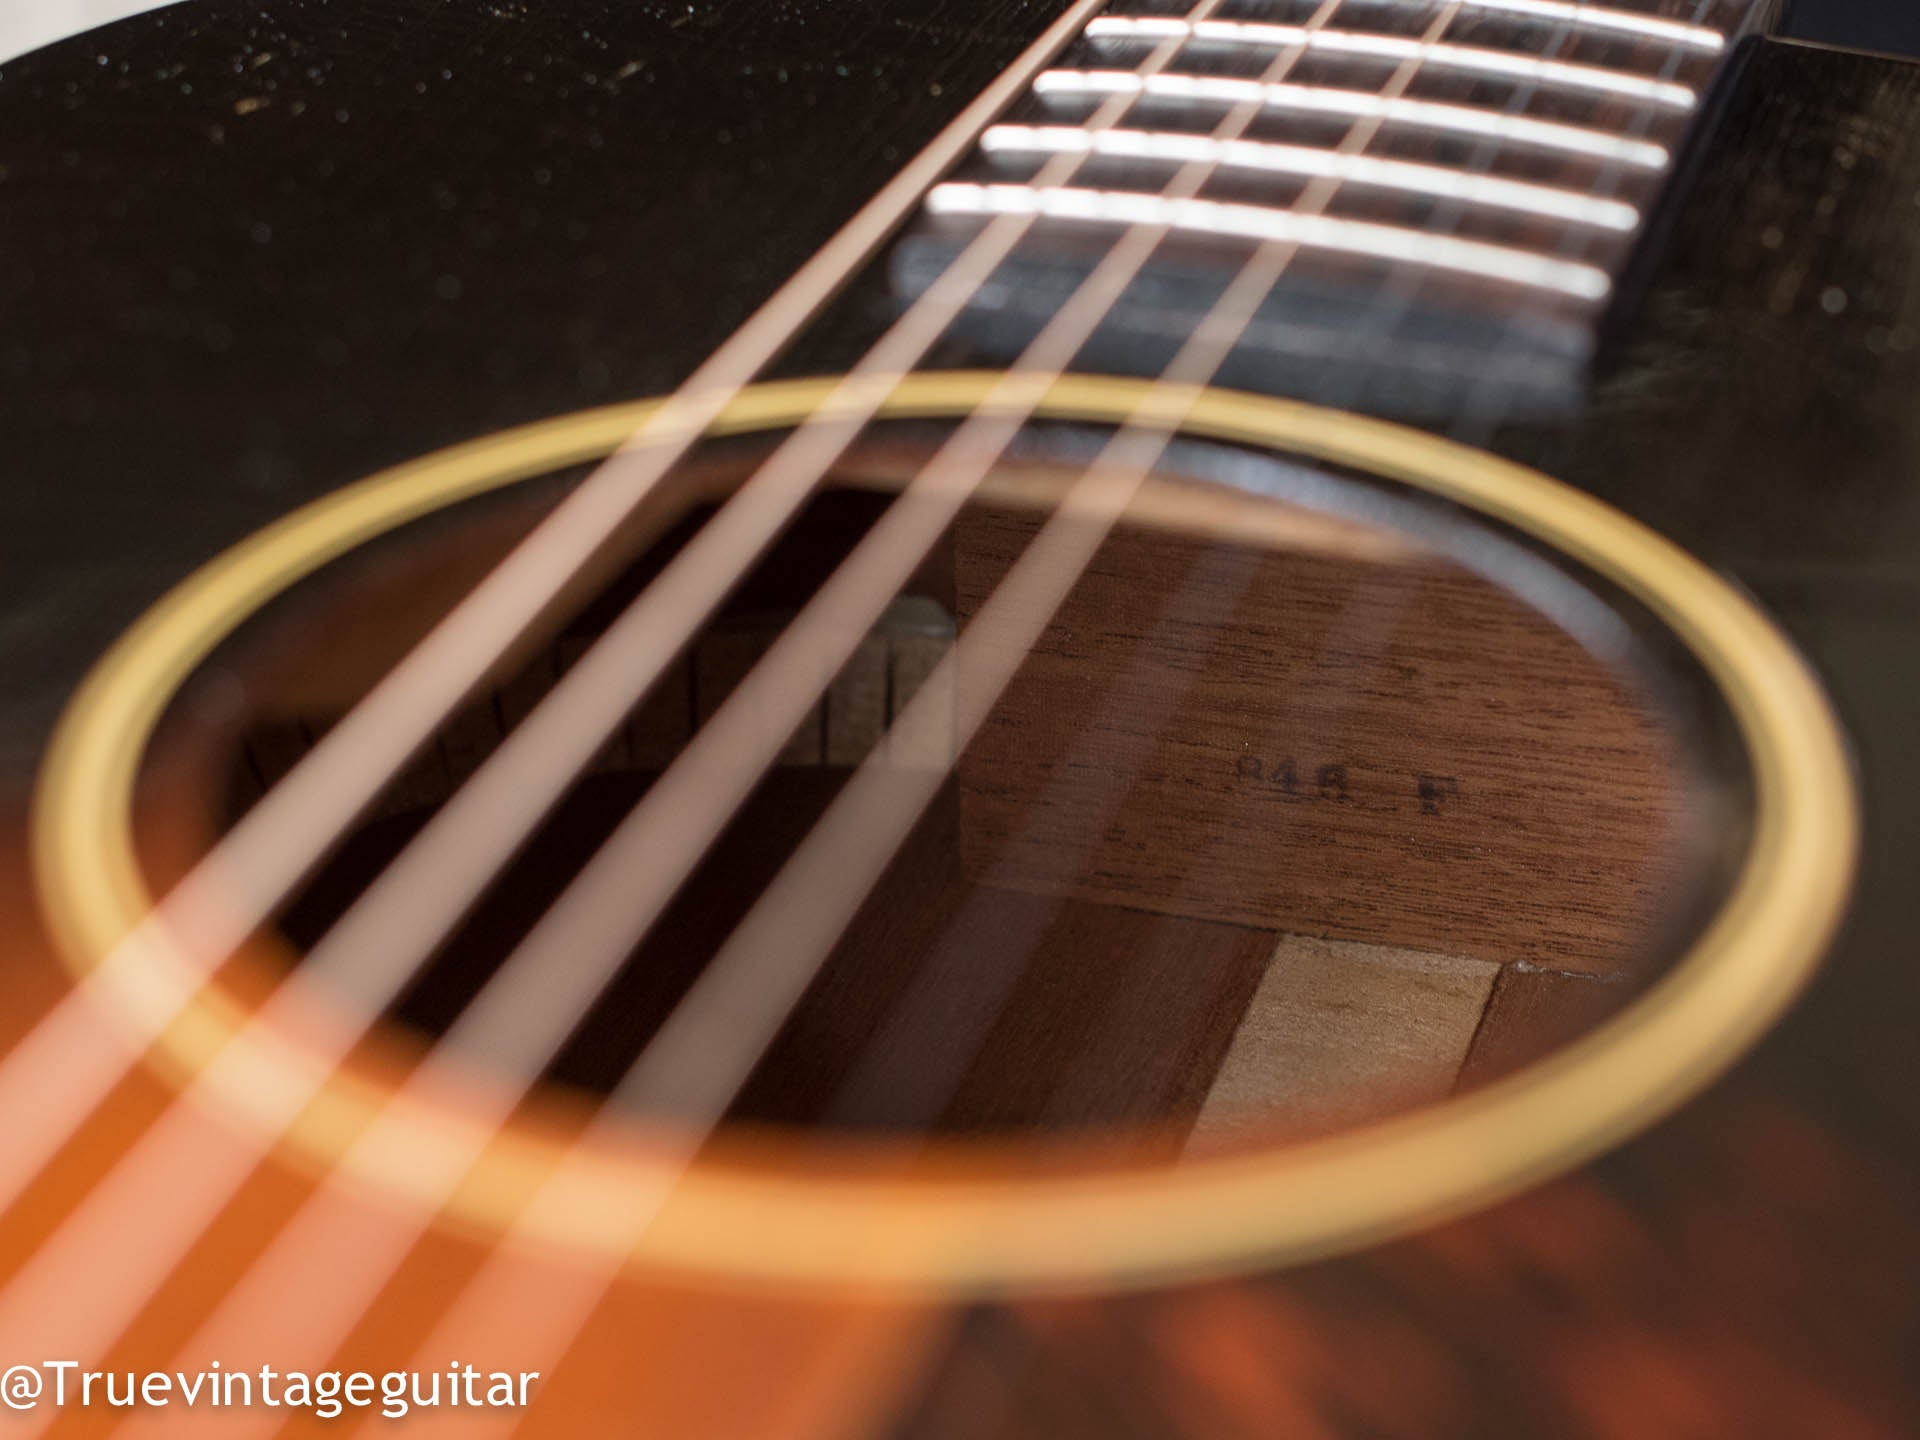 How to date vintage Gibson guitar, where to sell Gibson guitar